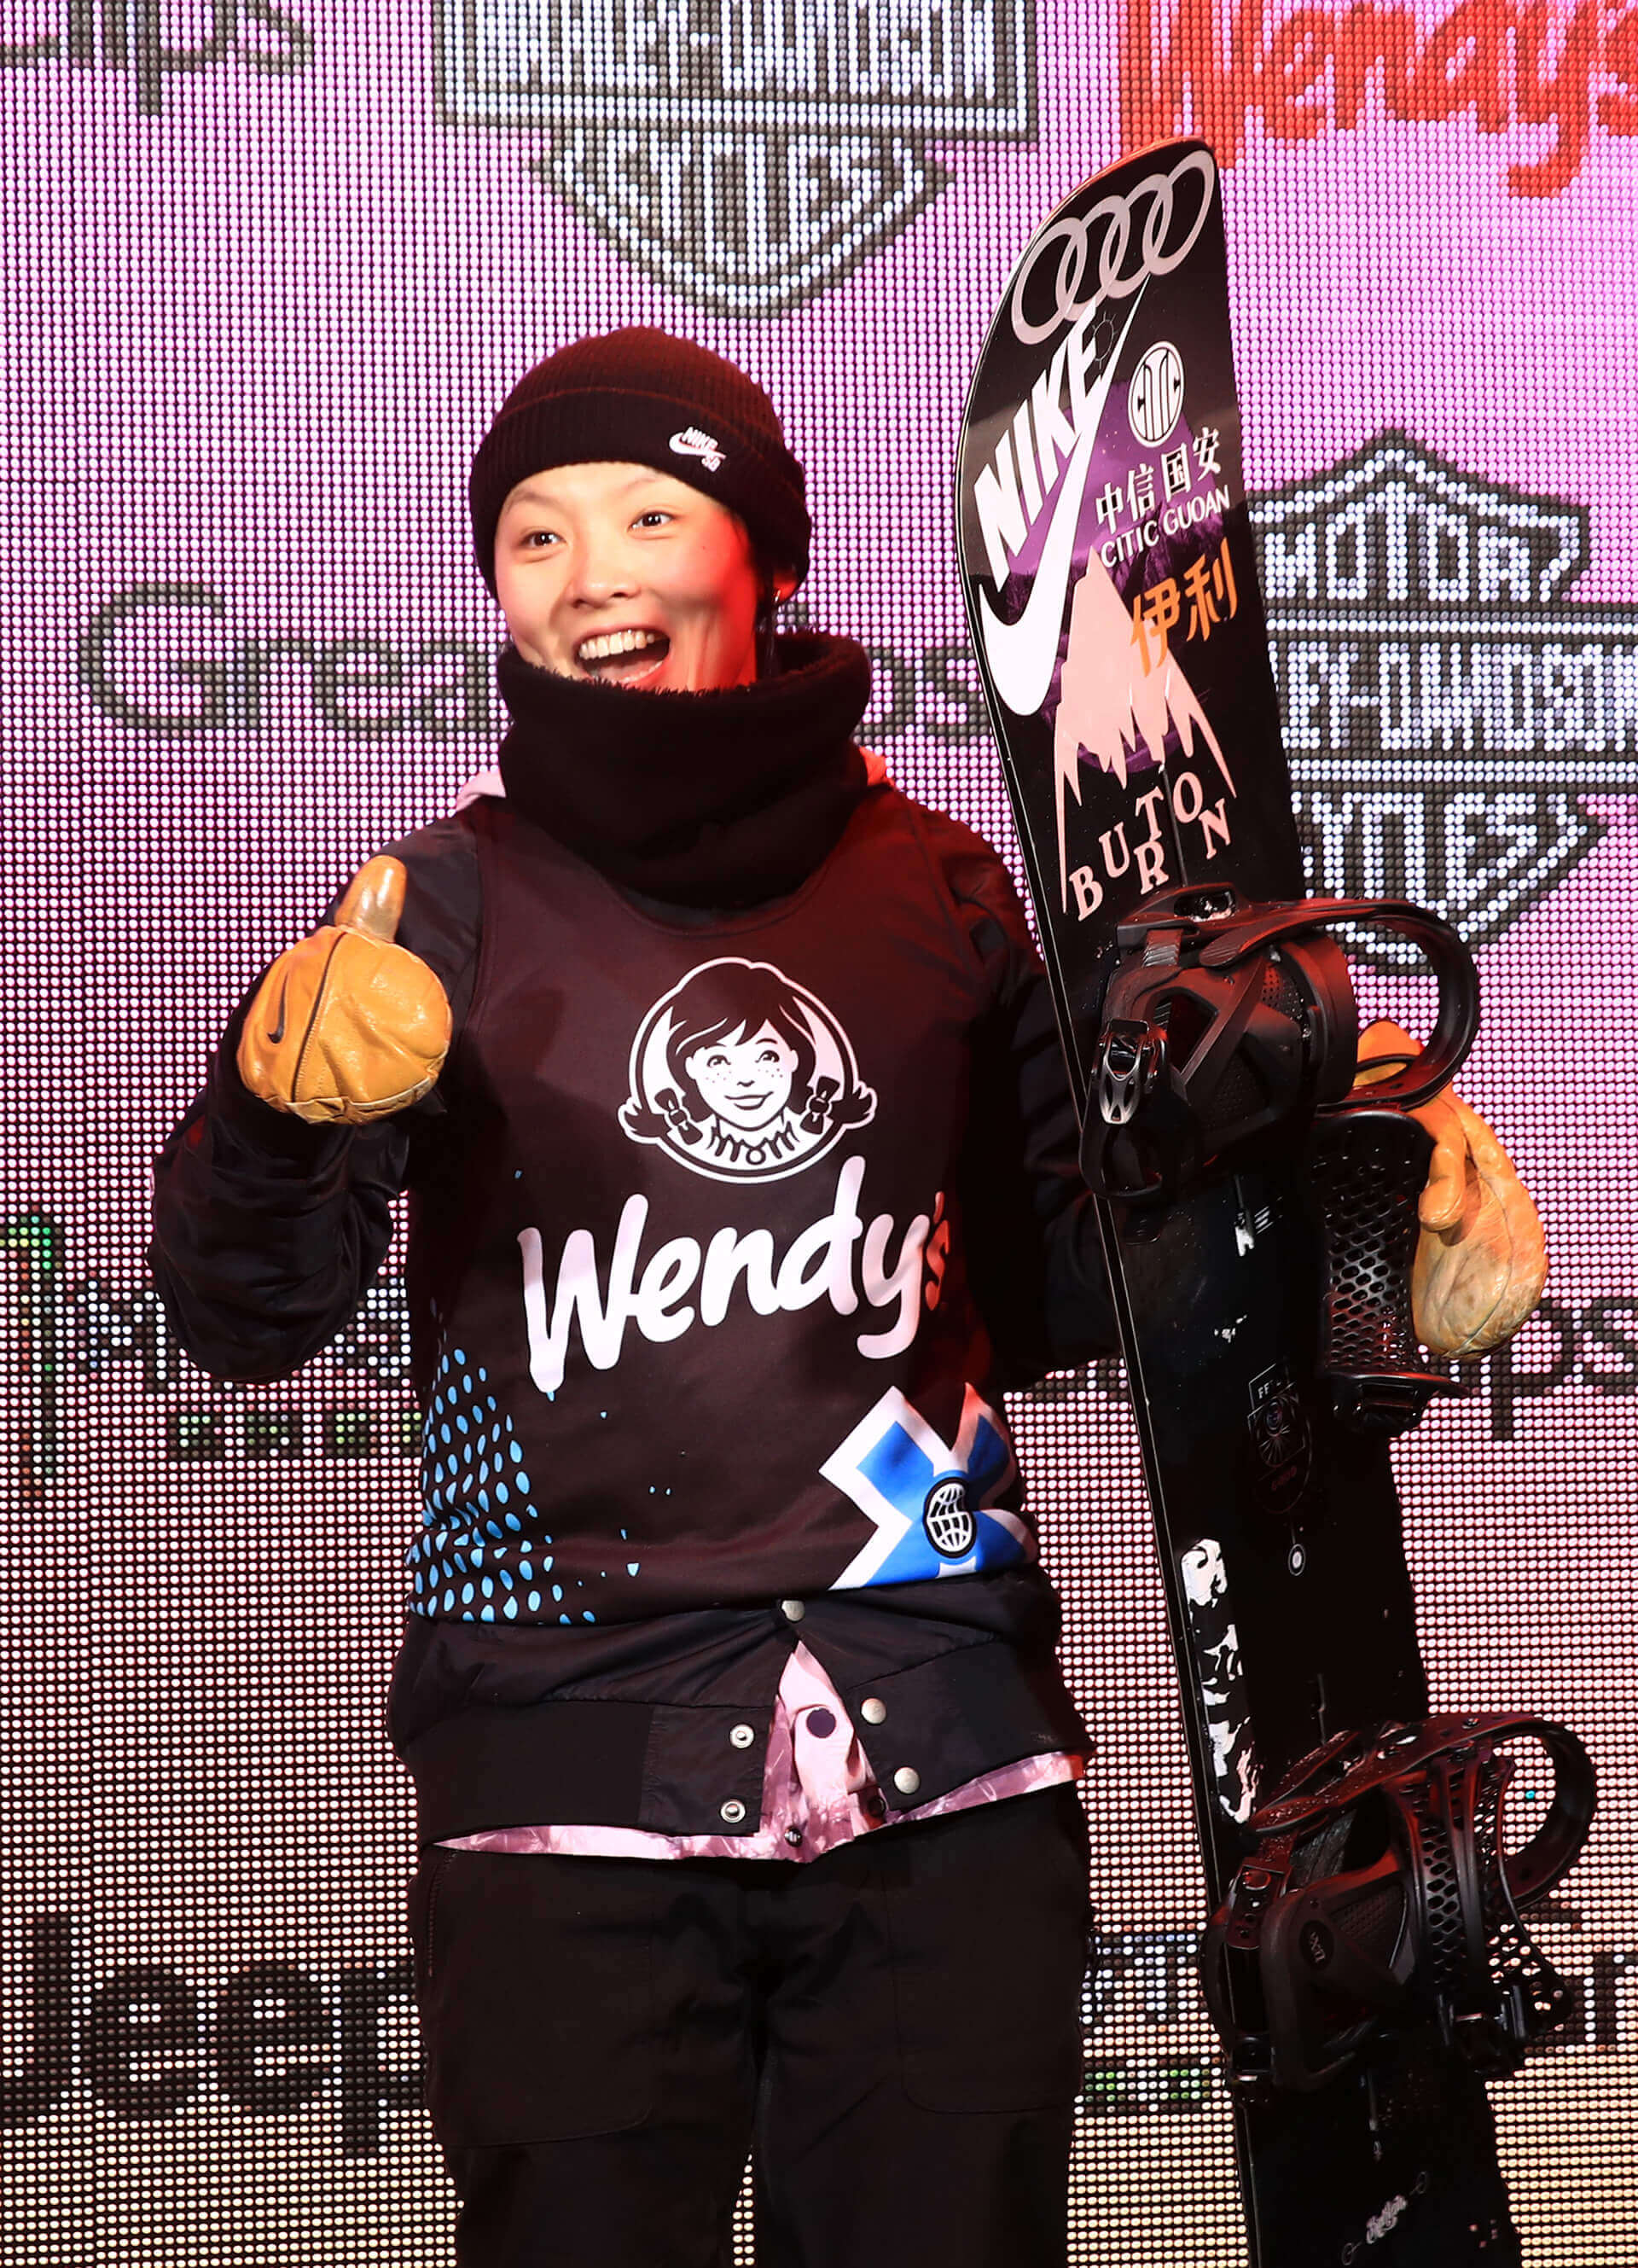 Along with securing media rights as the official QSR of X Games 2019, the brand sponsored two titled events including the Wendy's Men's Snowbike Cross and the all-new Wendy's Snowboard Knuckle Huck.